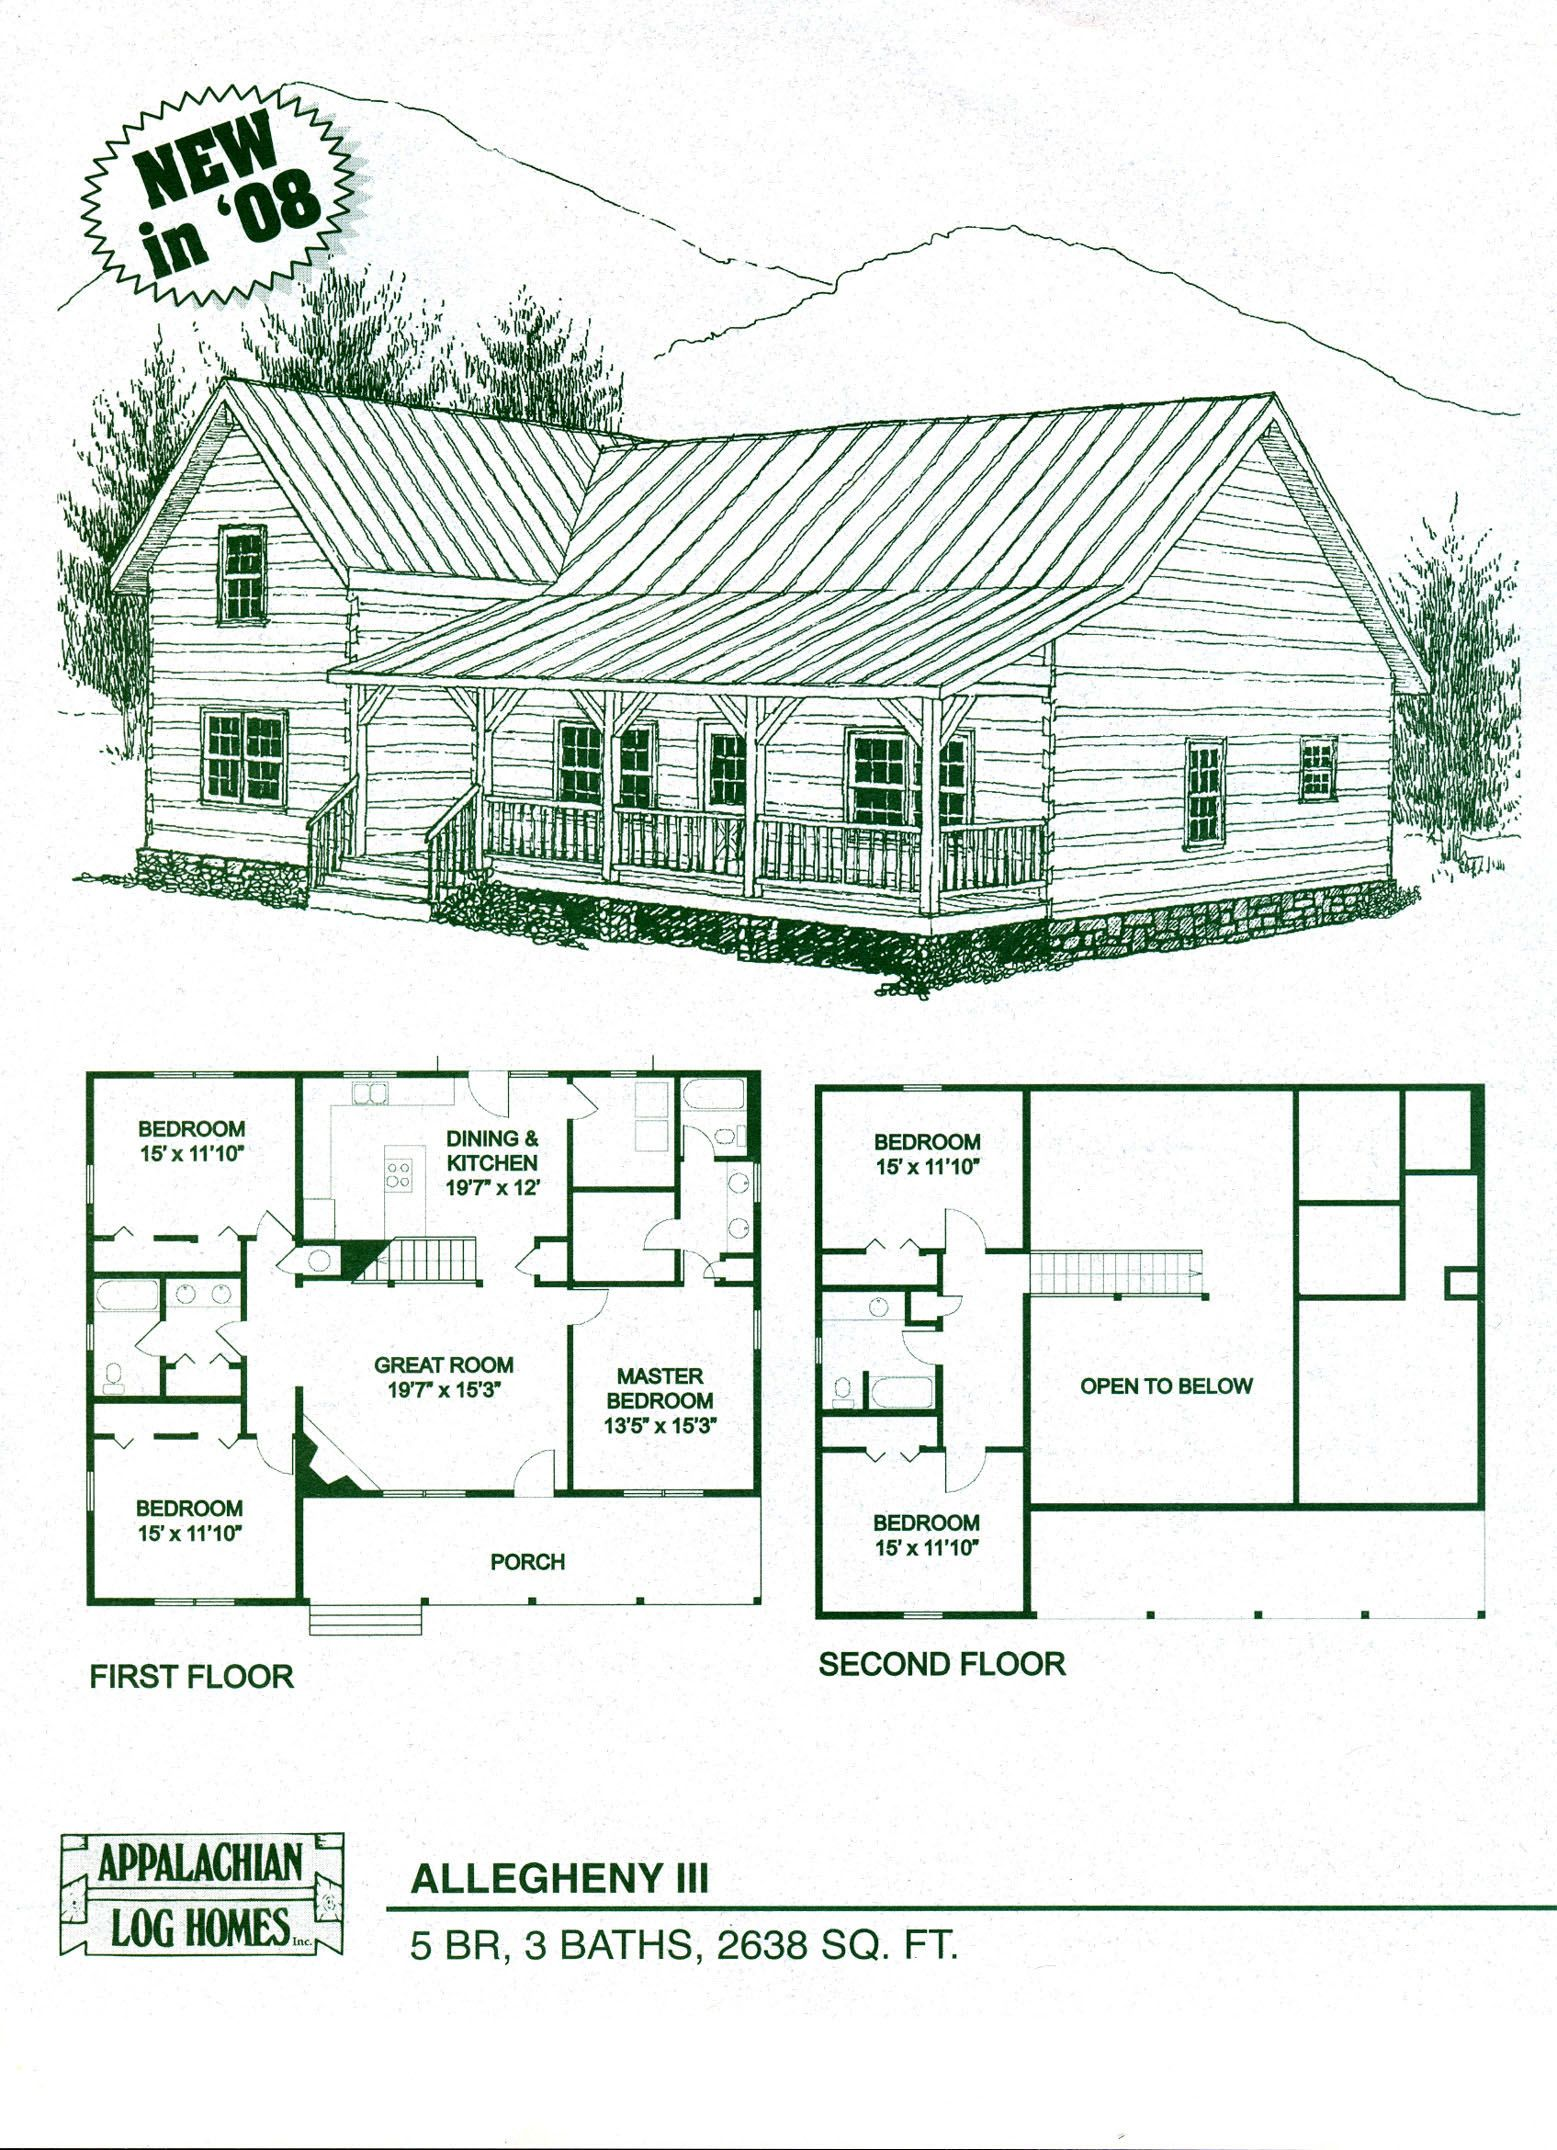 Log home floor plans log cabin kits appalachian log for Log cabin home floor plans